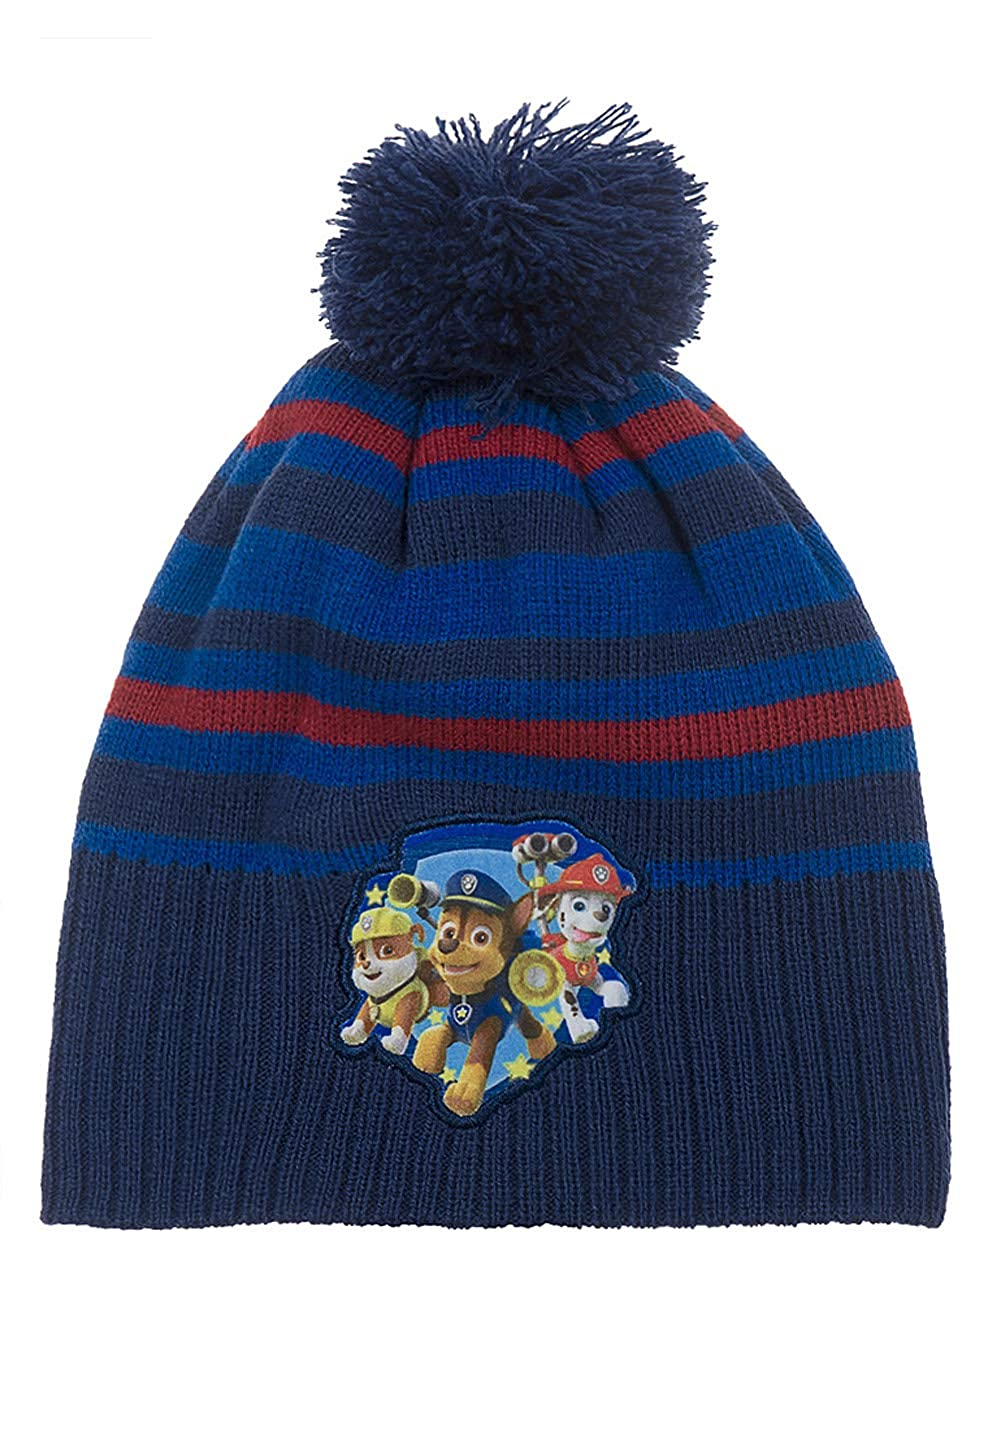 Nickelodeon Boys Charecter Paw Patrol Blue Stripe Winter Hat Age 1 to 5